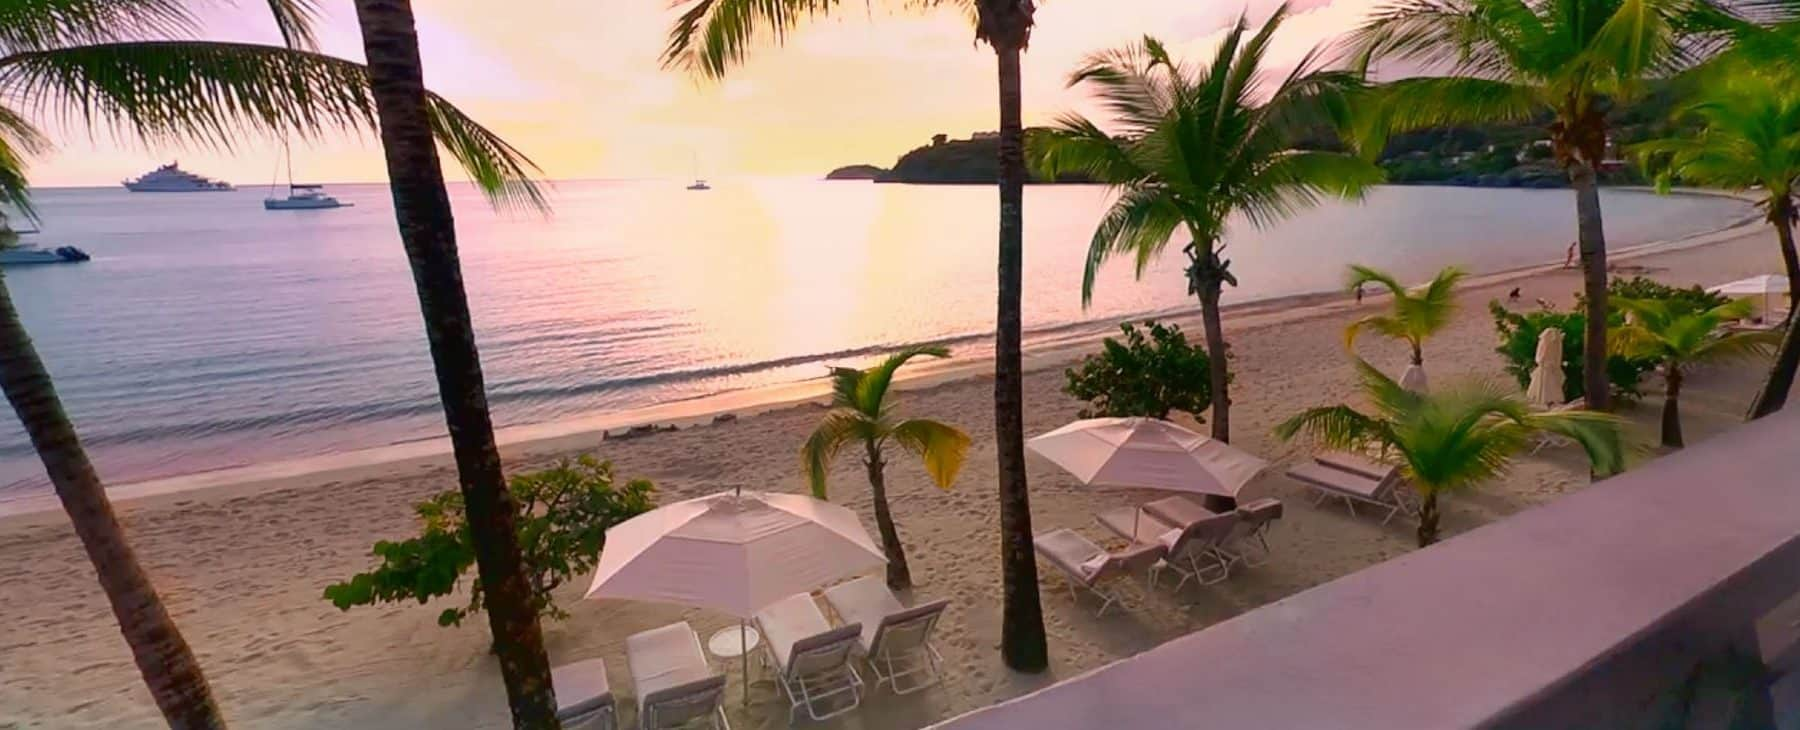 View of the beach with sun loungers at Carlisle Bay in Antigua